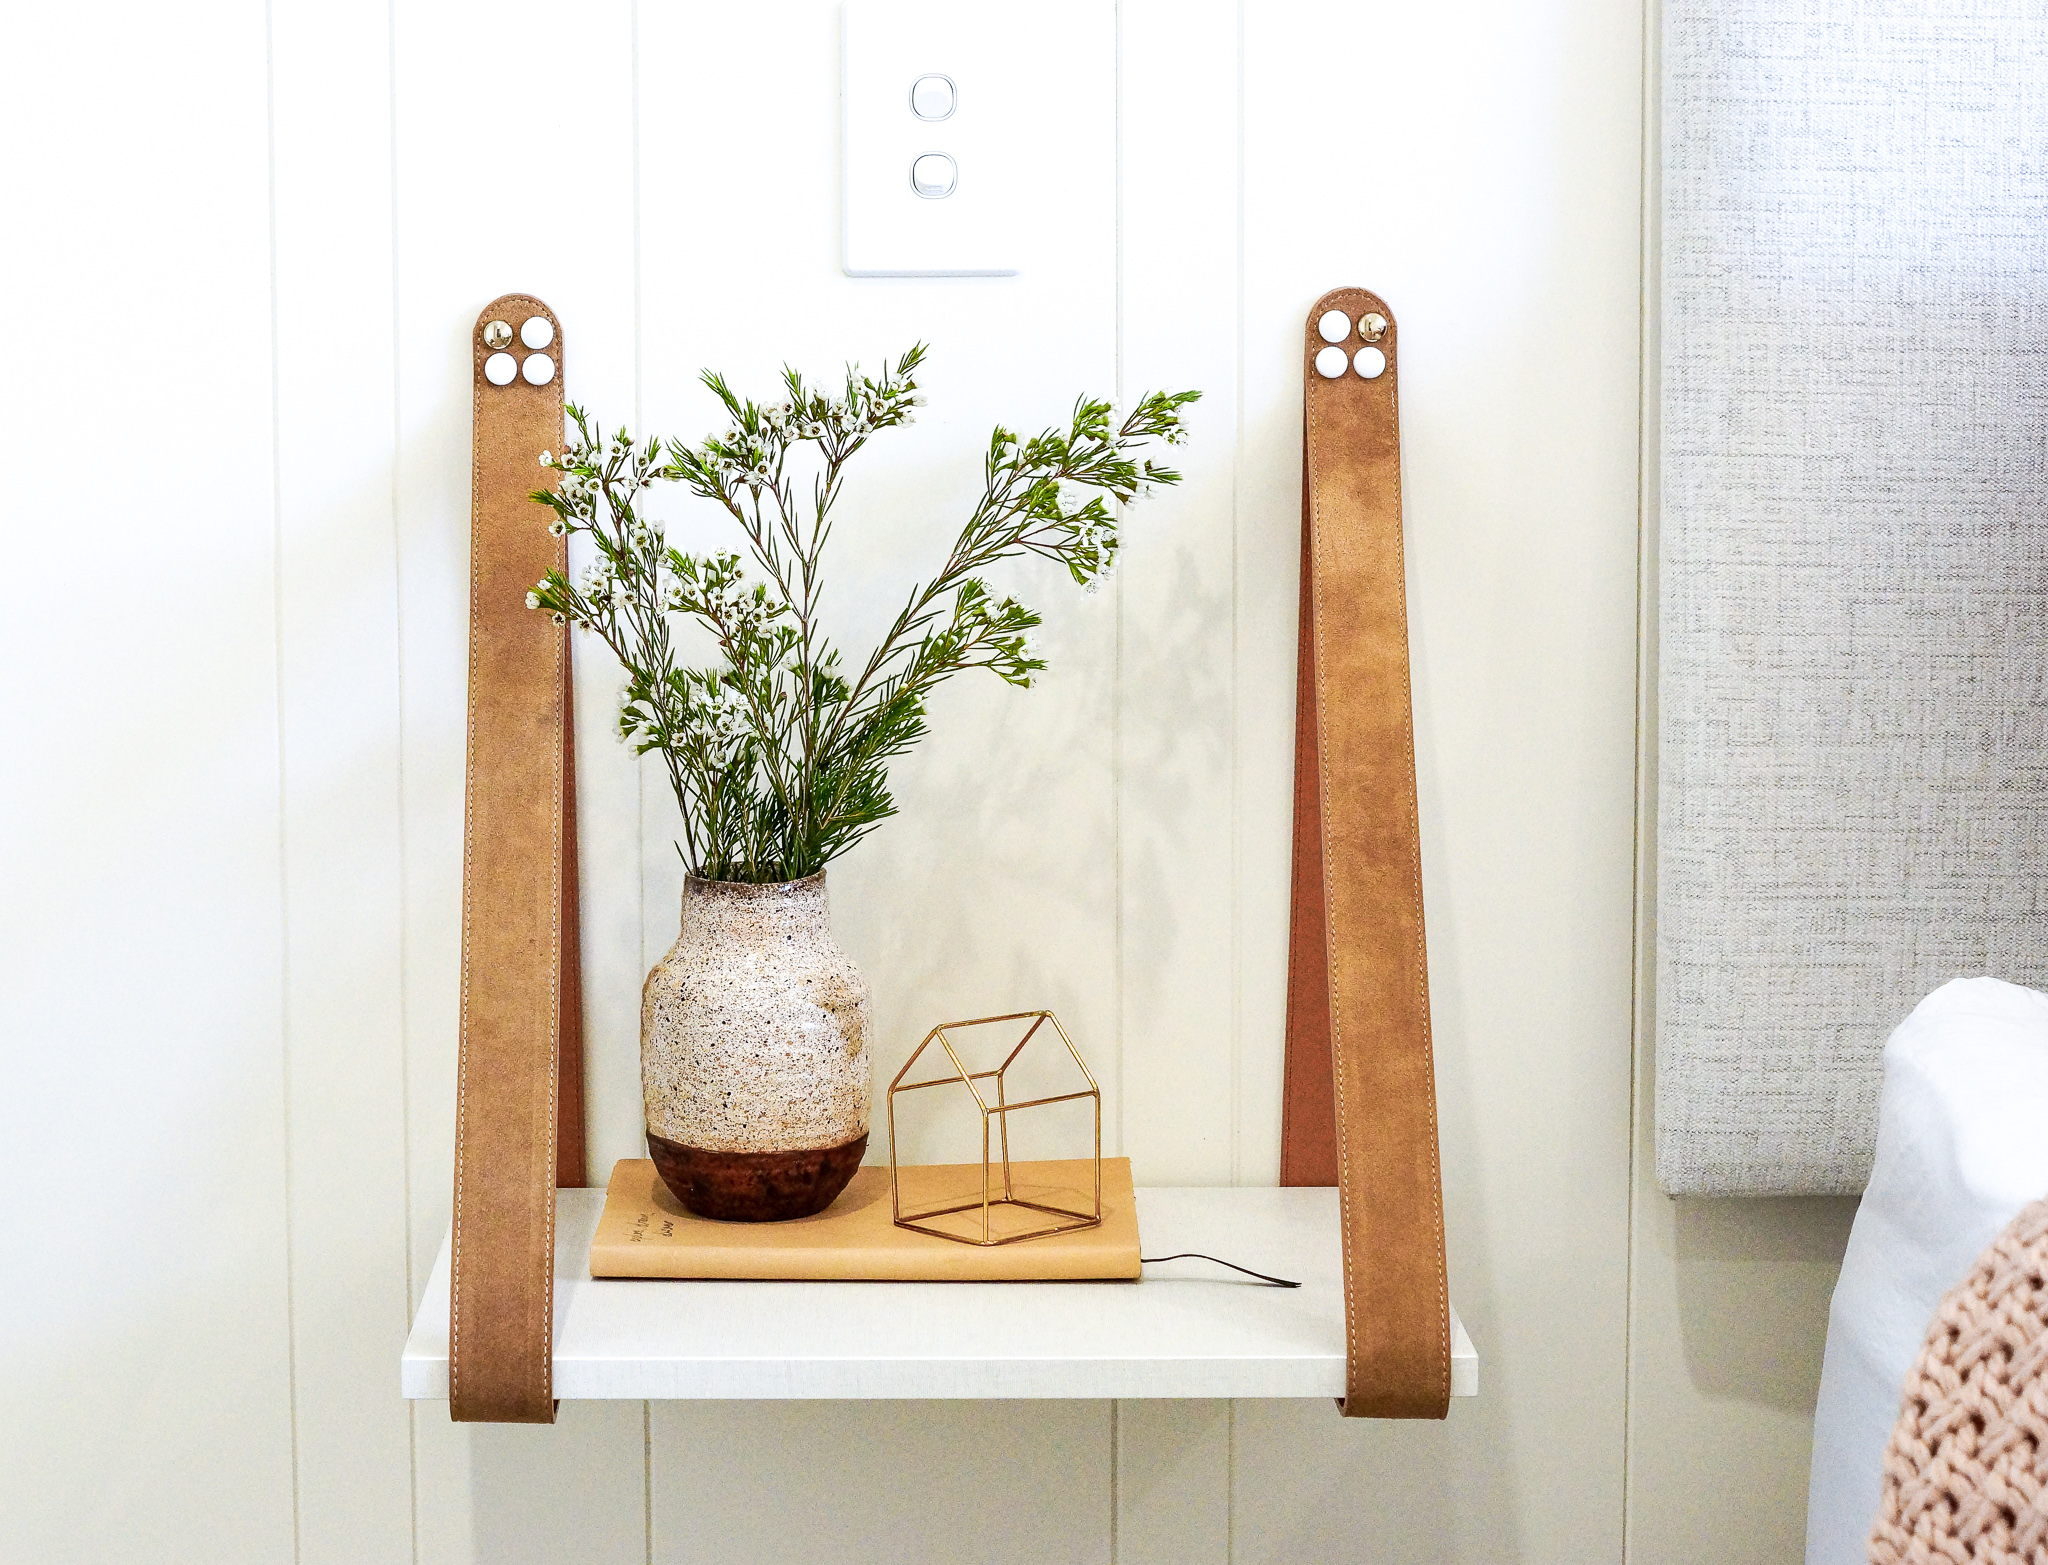 We're loving this leather strap side table!